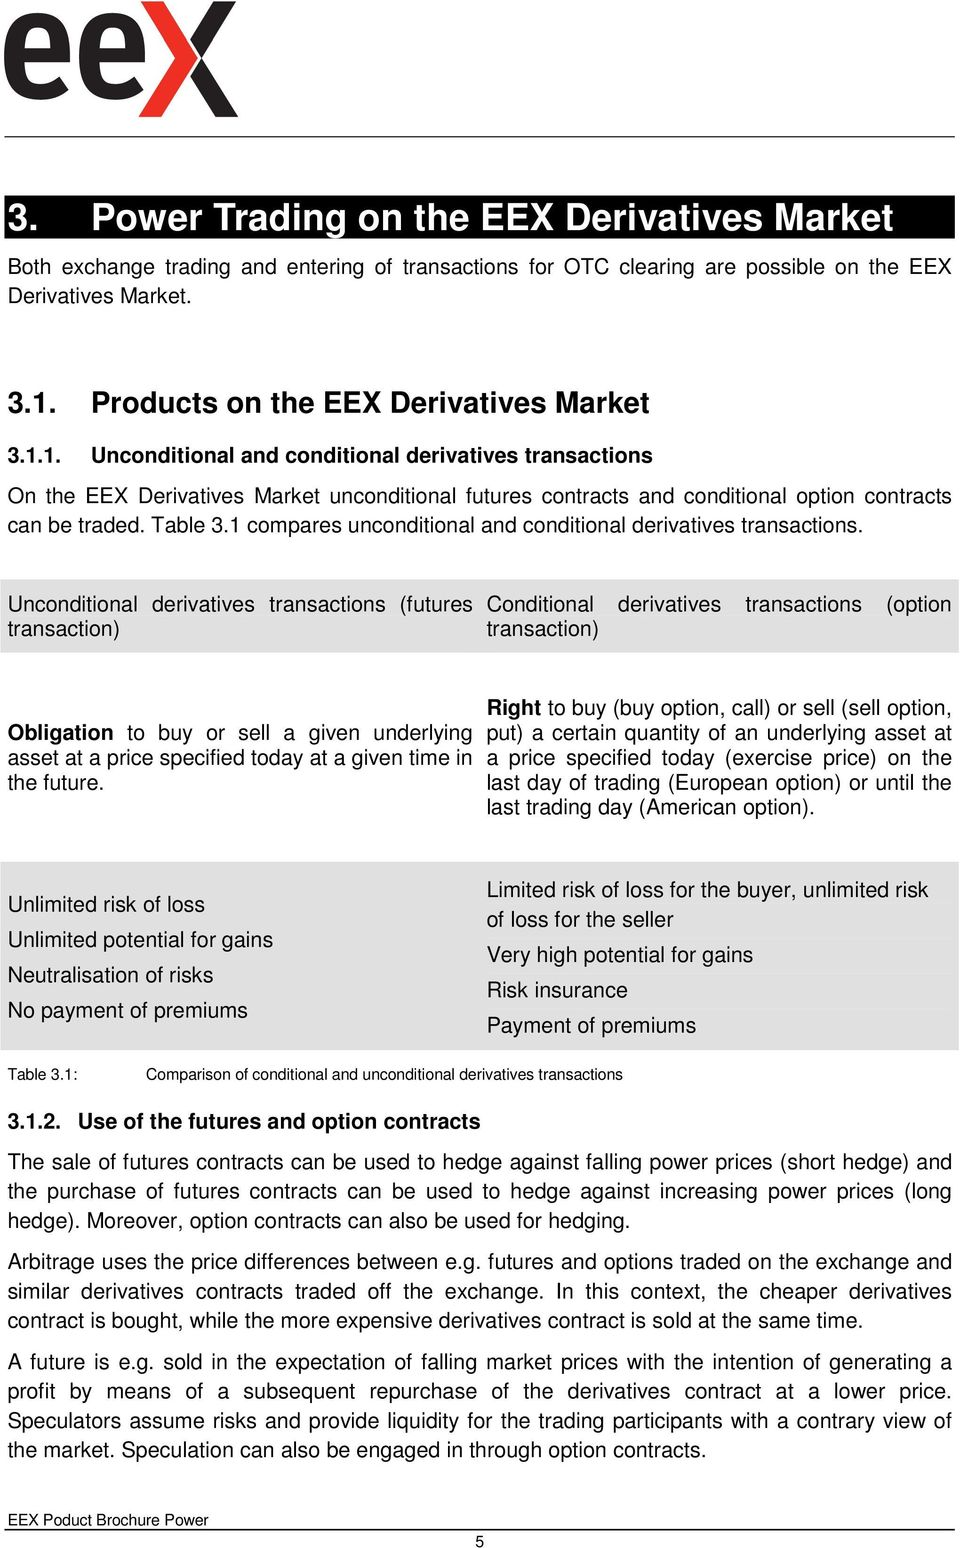 1. Unconditional and conditional derivatives transactions On the EEX Derivatives Market unconditional futures contracts and conditional option contracts can be traded. Table 3.